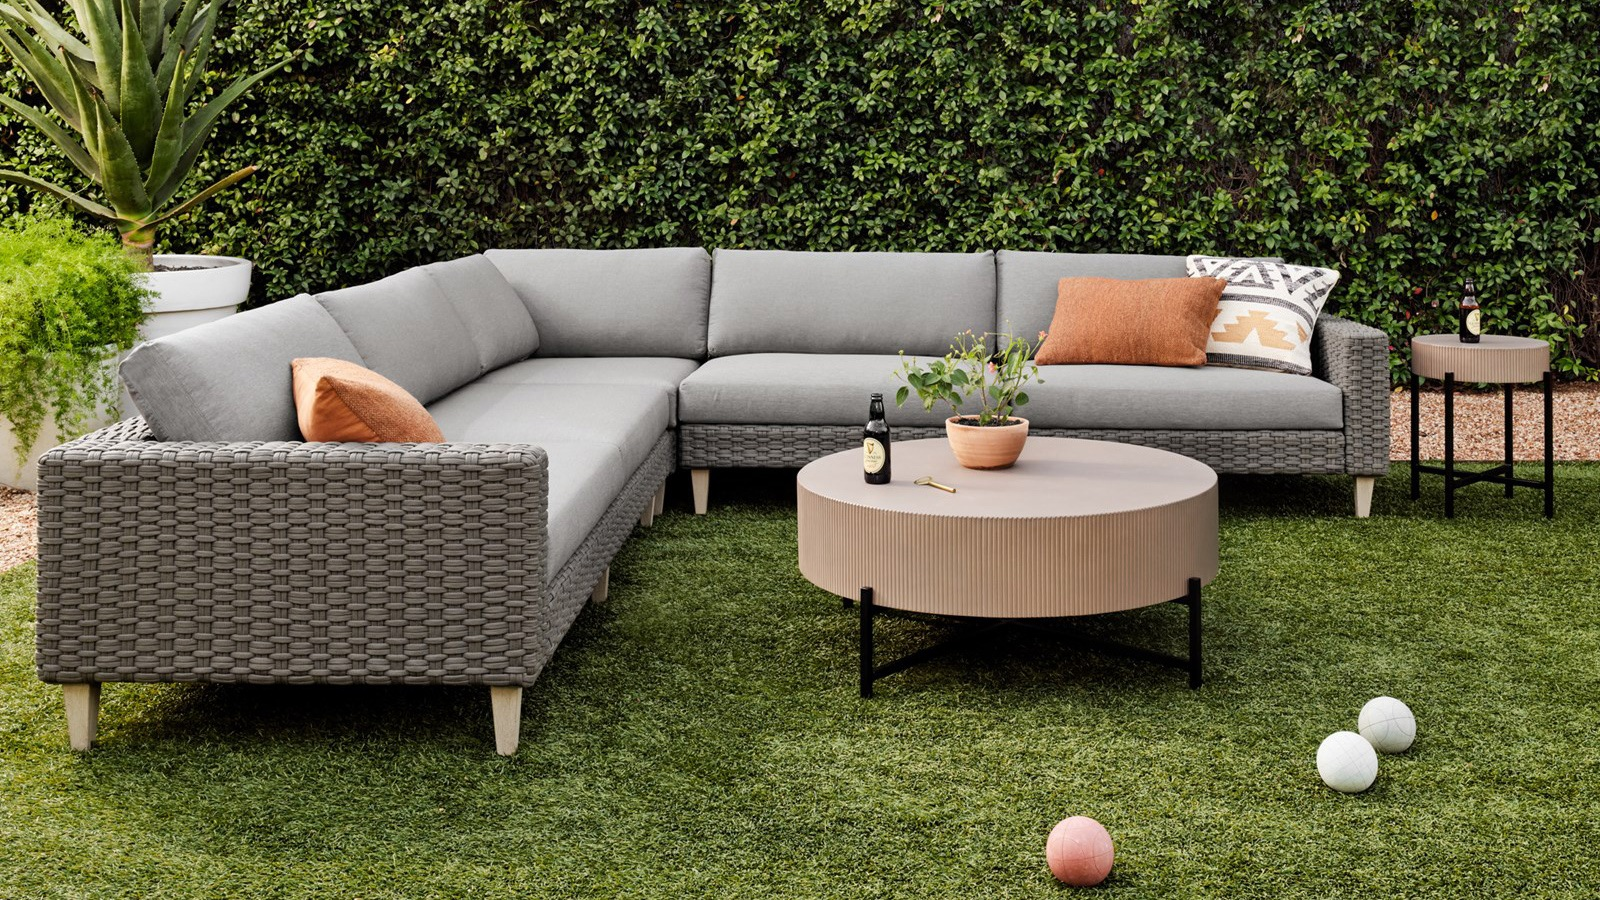 Outdoor space with planter, sectional couch, coffee and side table by a manicured hedges